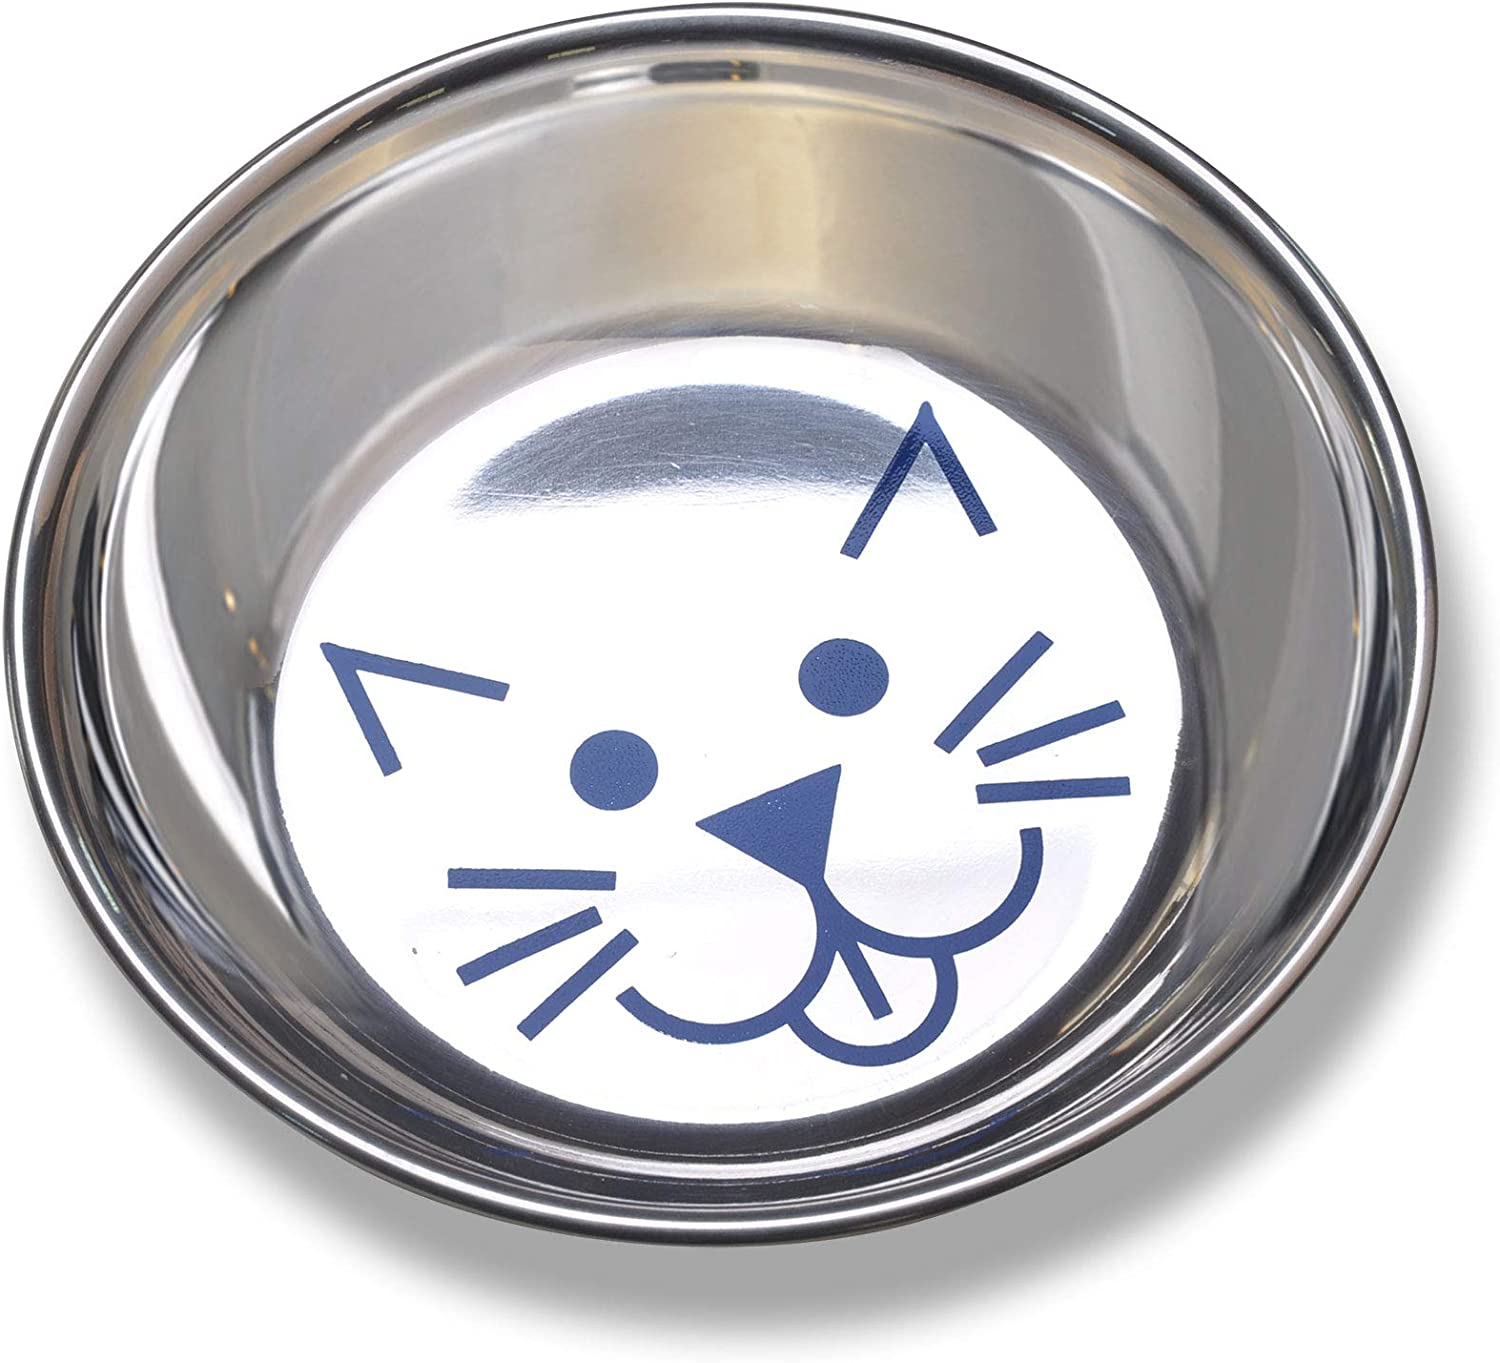 Van Ness Stainless Steel Saucer Style Cat Dish, 8 Ounce